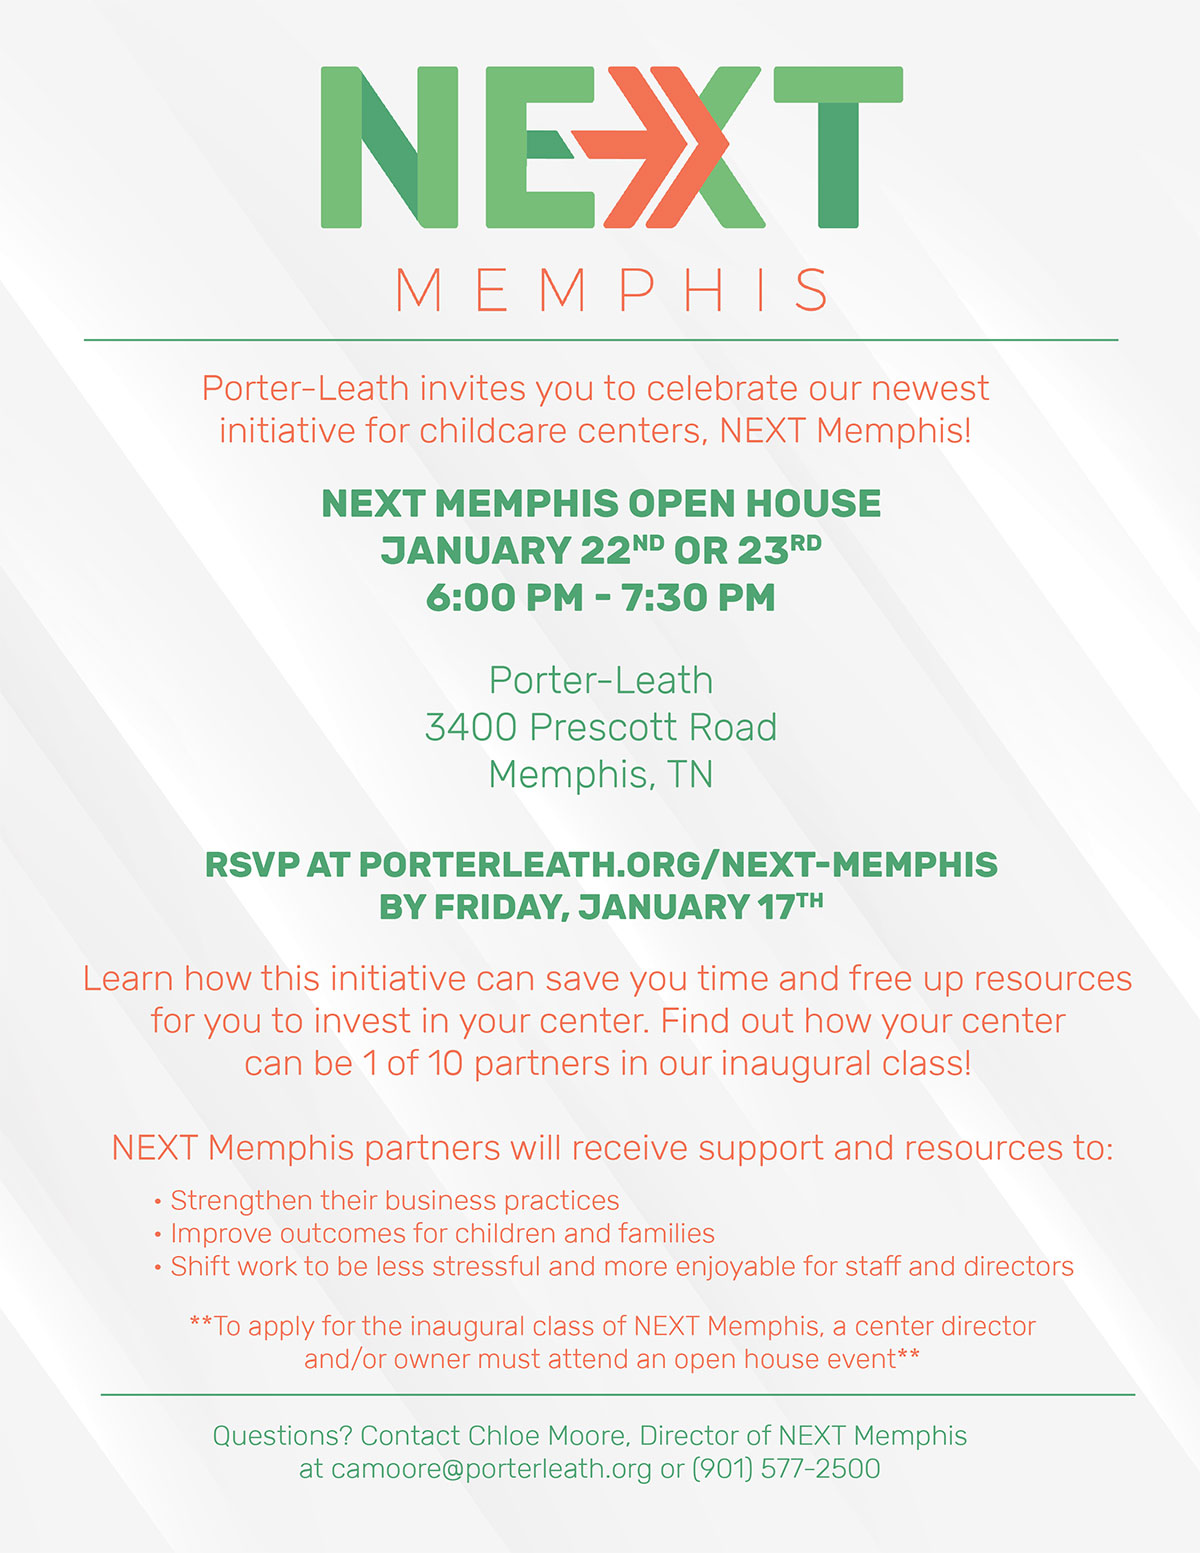 NEXT Memphis Open House Jan 22 and 23, 2020 Flyer